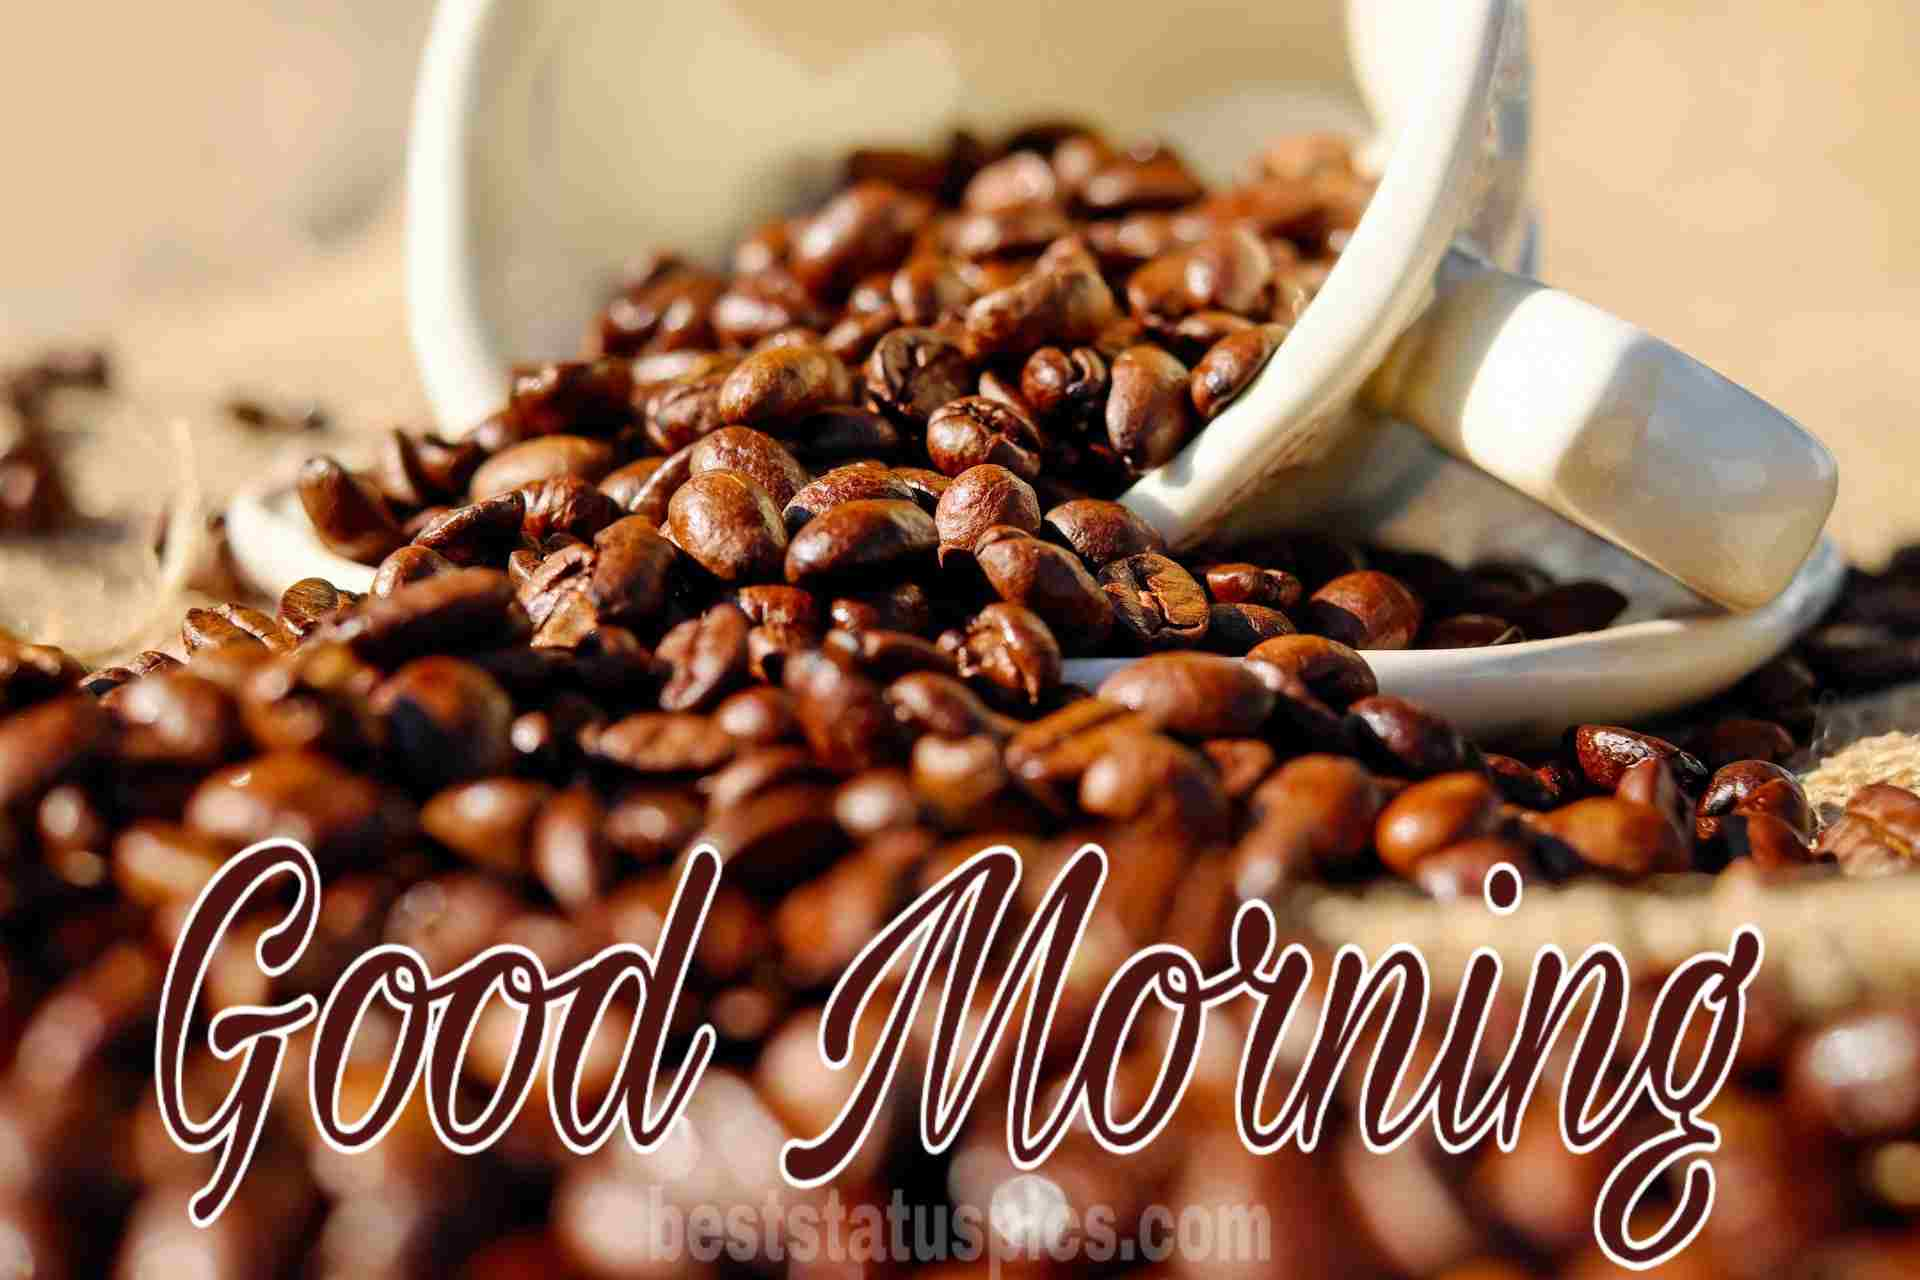 Good morning wishes with coffee cup pic